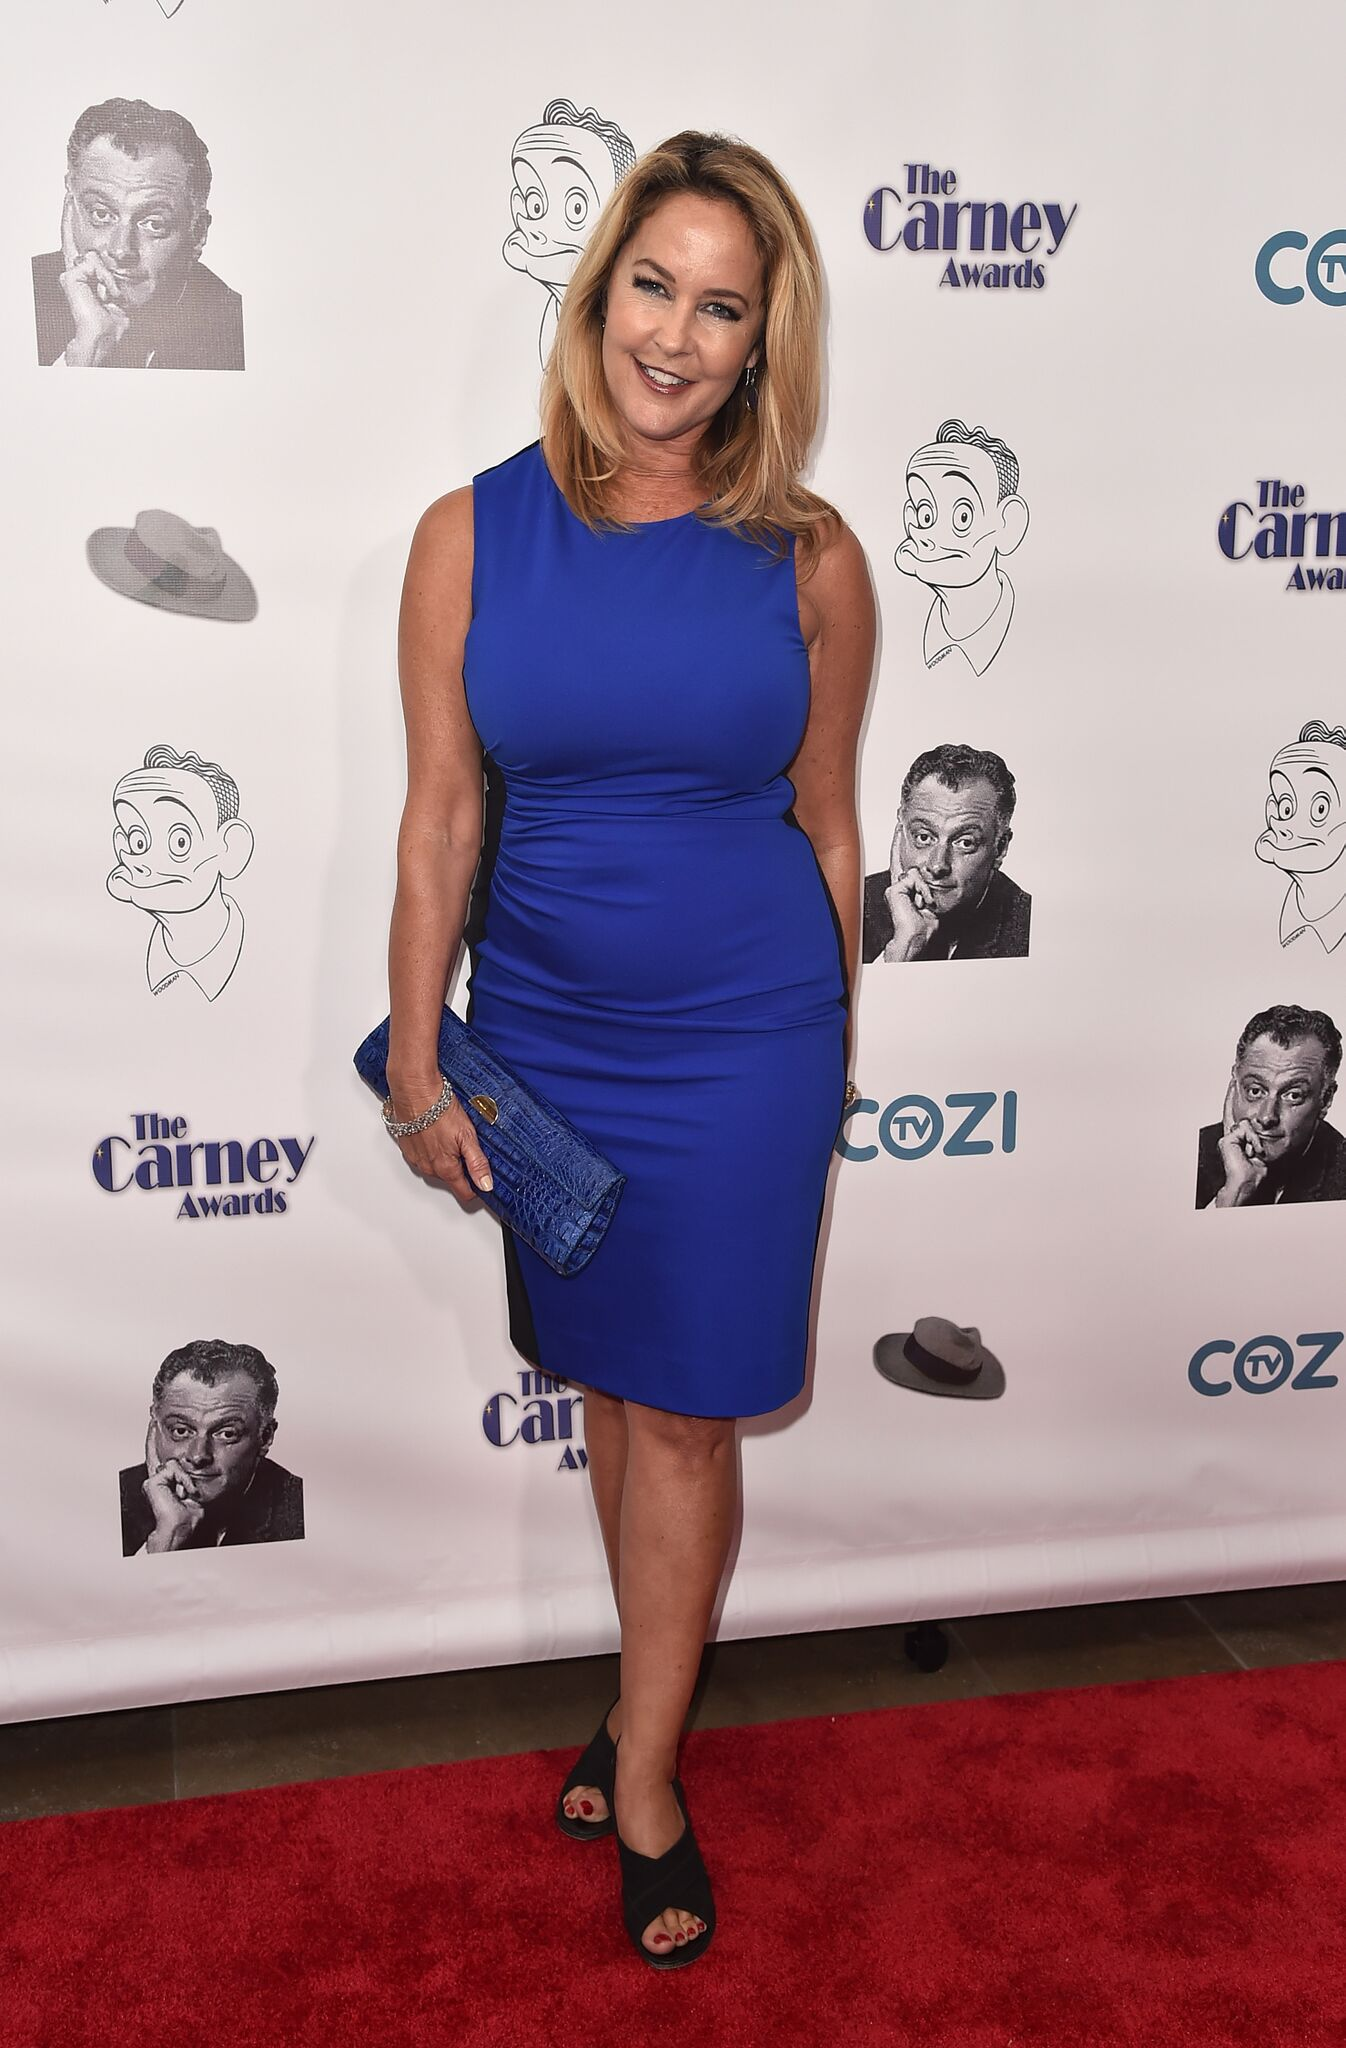 Erin Murphy attends the 3rd Annual Carney Awards | Getty Images